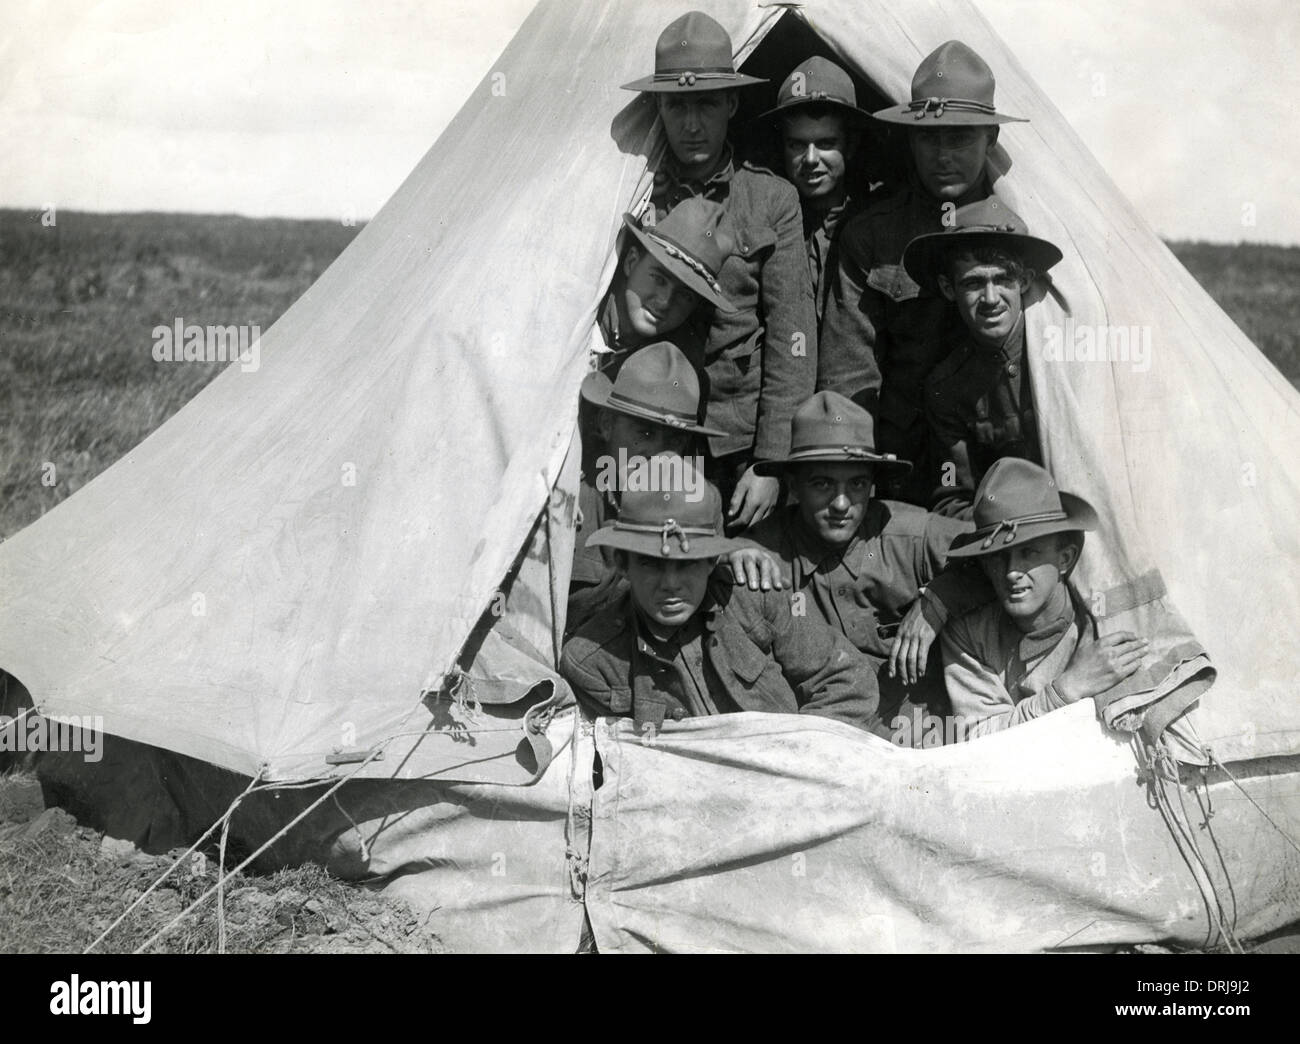 American troops in a tent Boisleux-au-Mont France WW1  sc 1 st  Alamy & American troops in a tent Boisleux-au-Mont France WW1 Stock ...